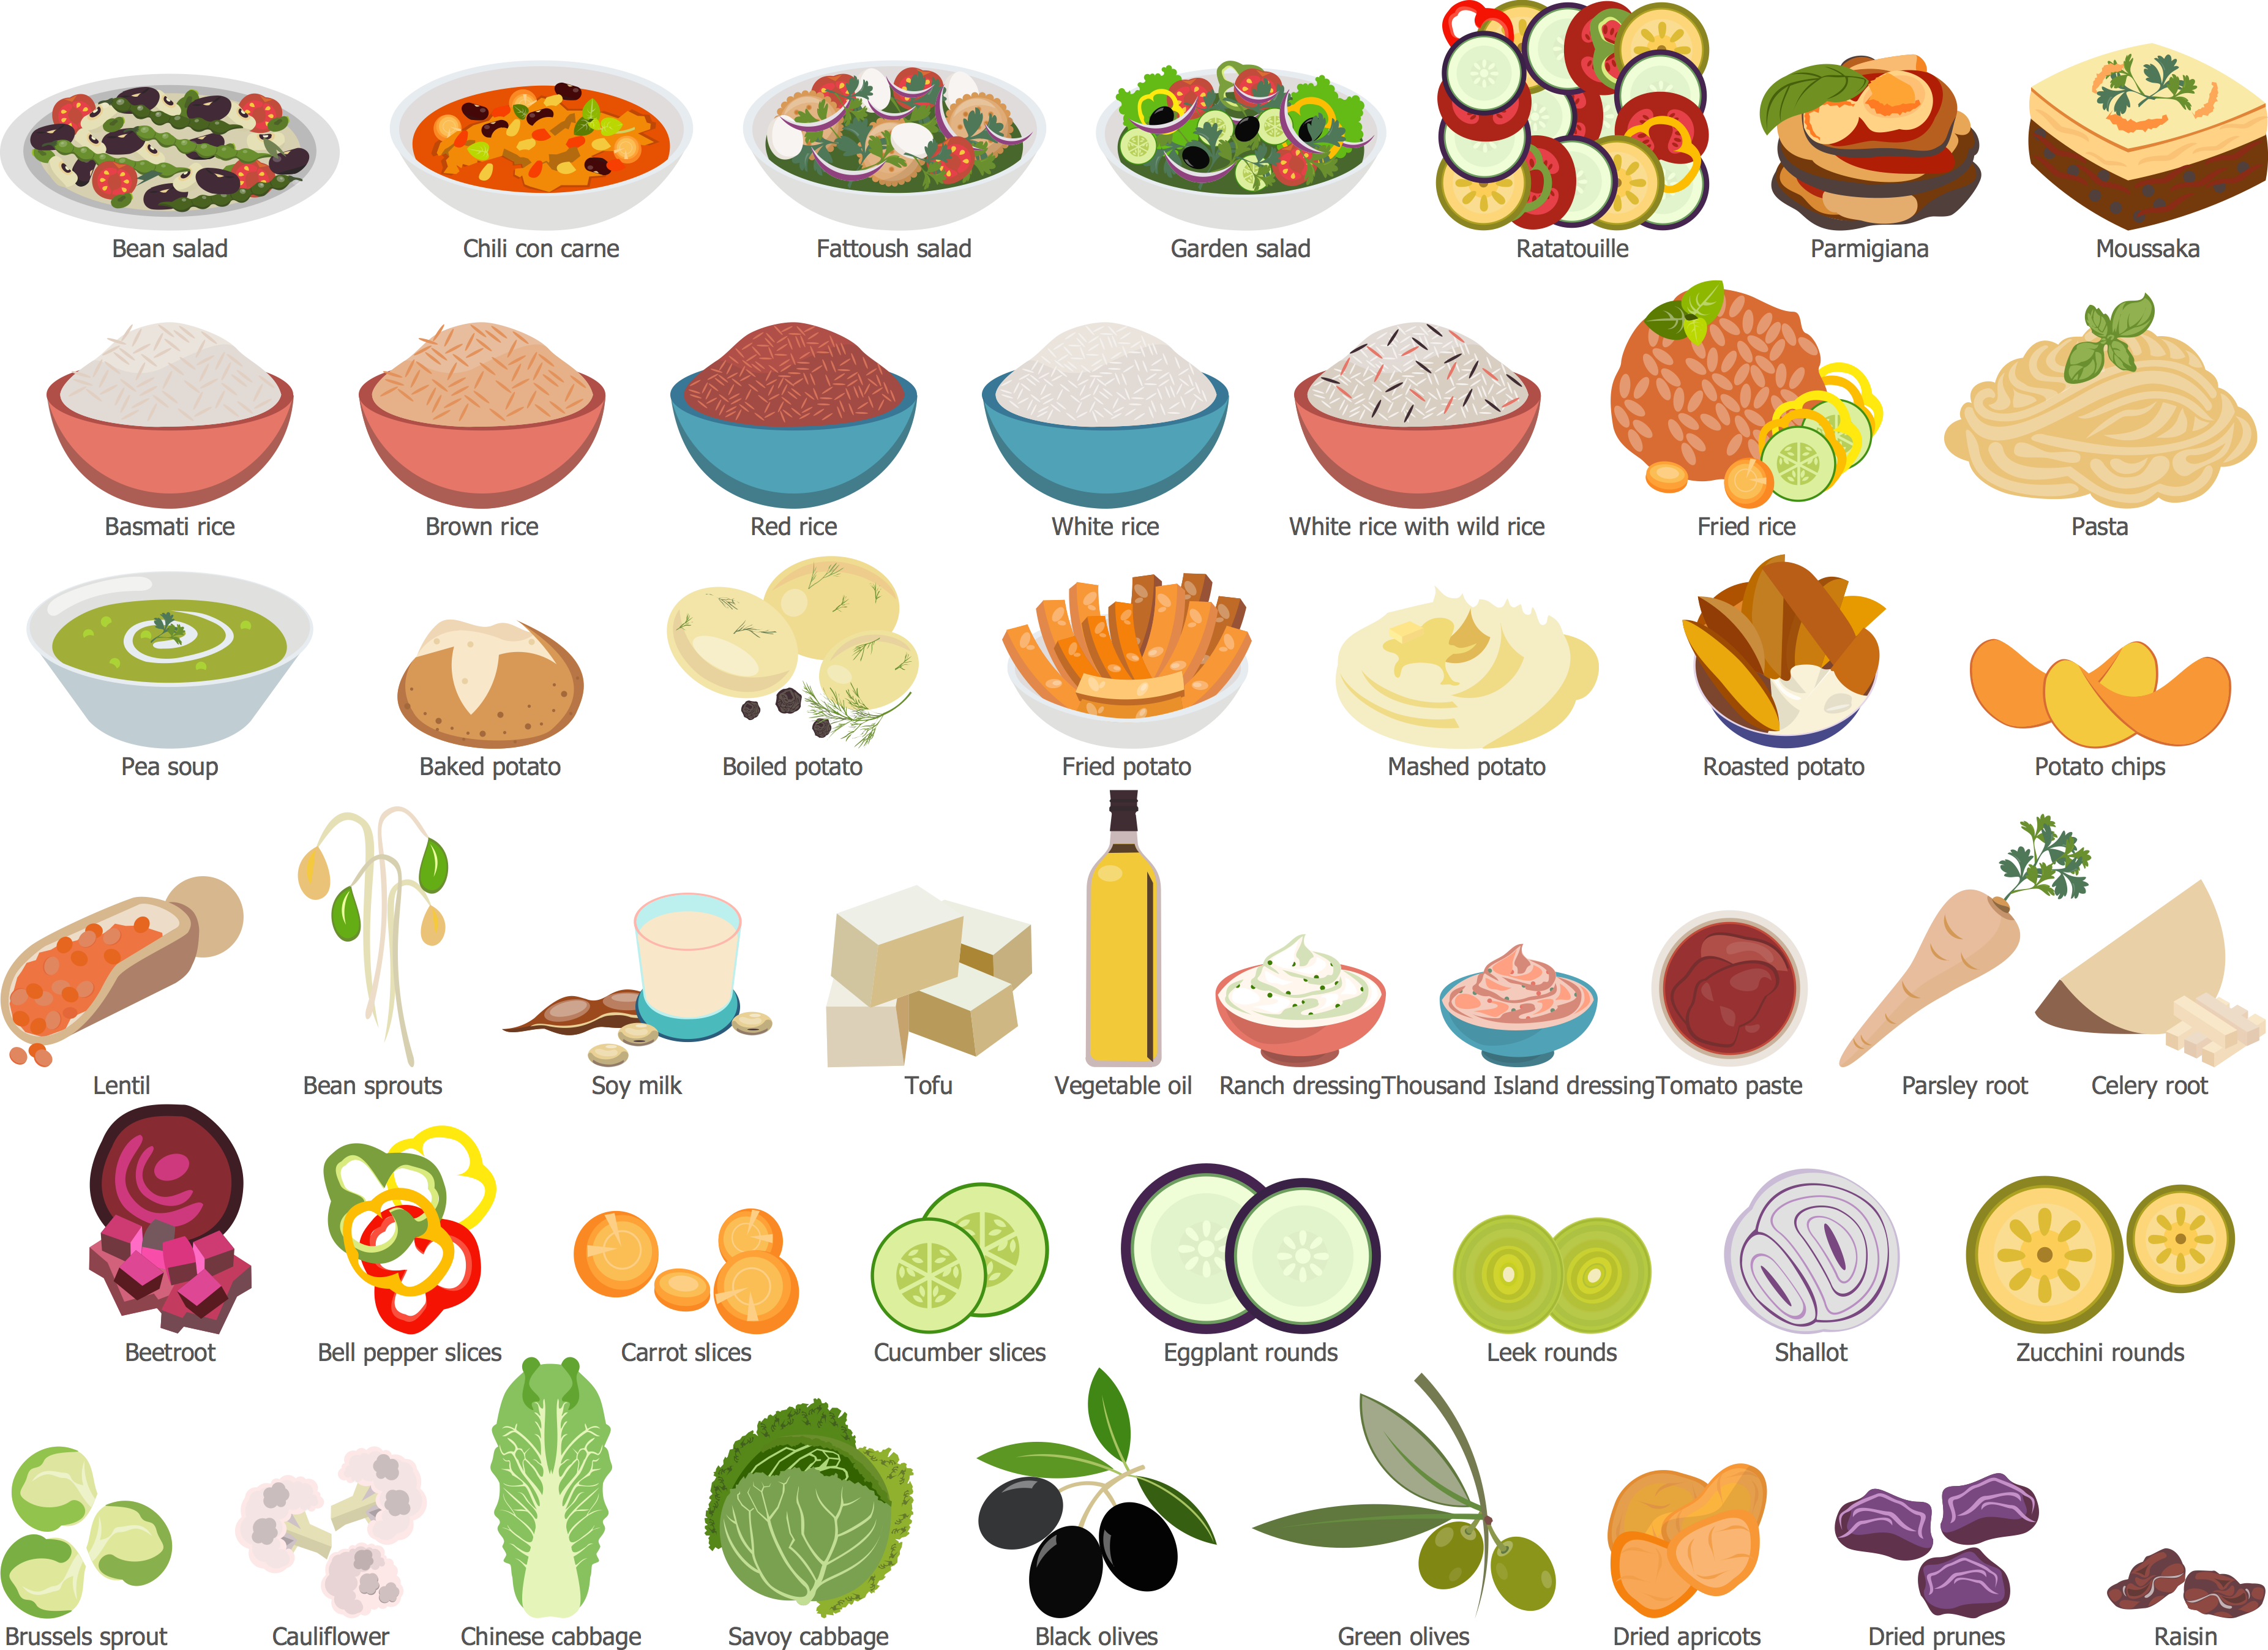 Food recipes salads side dishes and vegetables library forumfinder Images